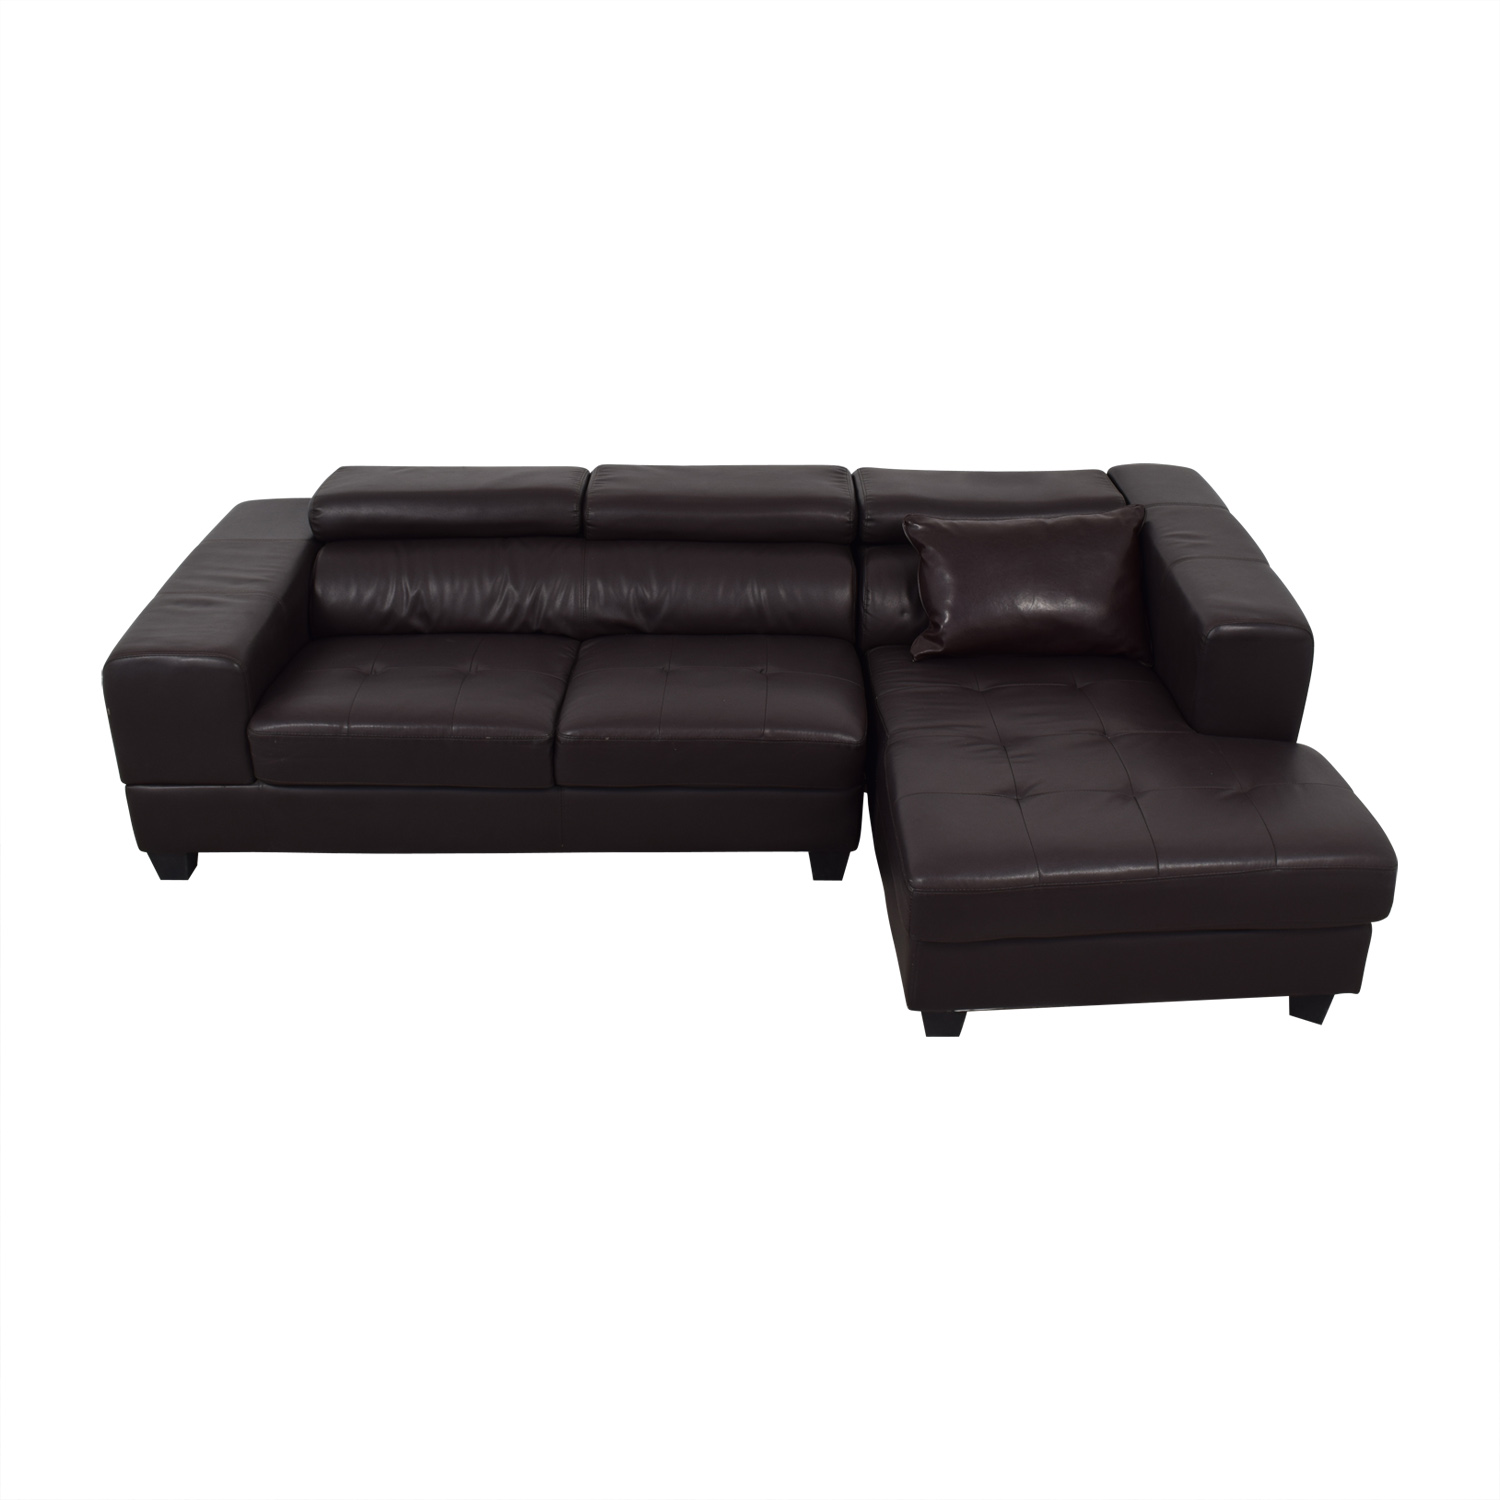 Brown Tufted Faux Leather Chaise Sectional Sofas